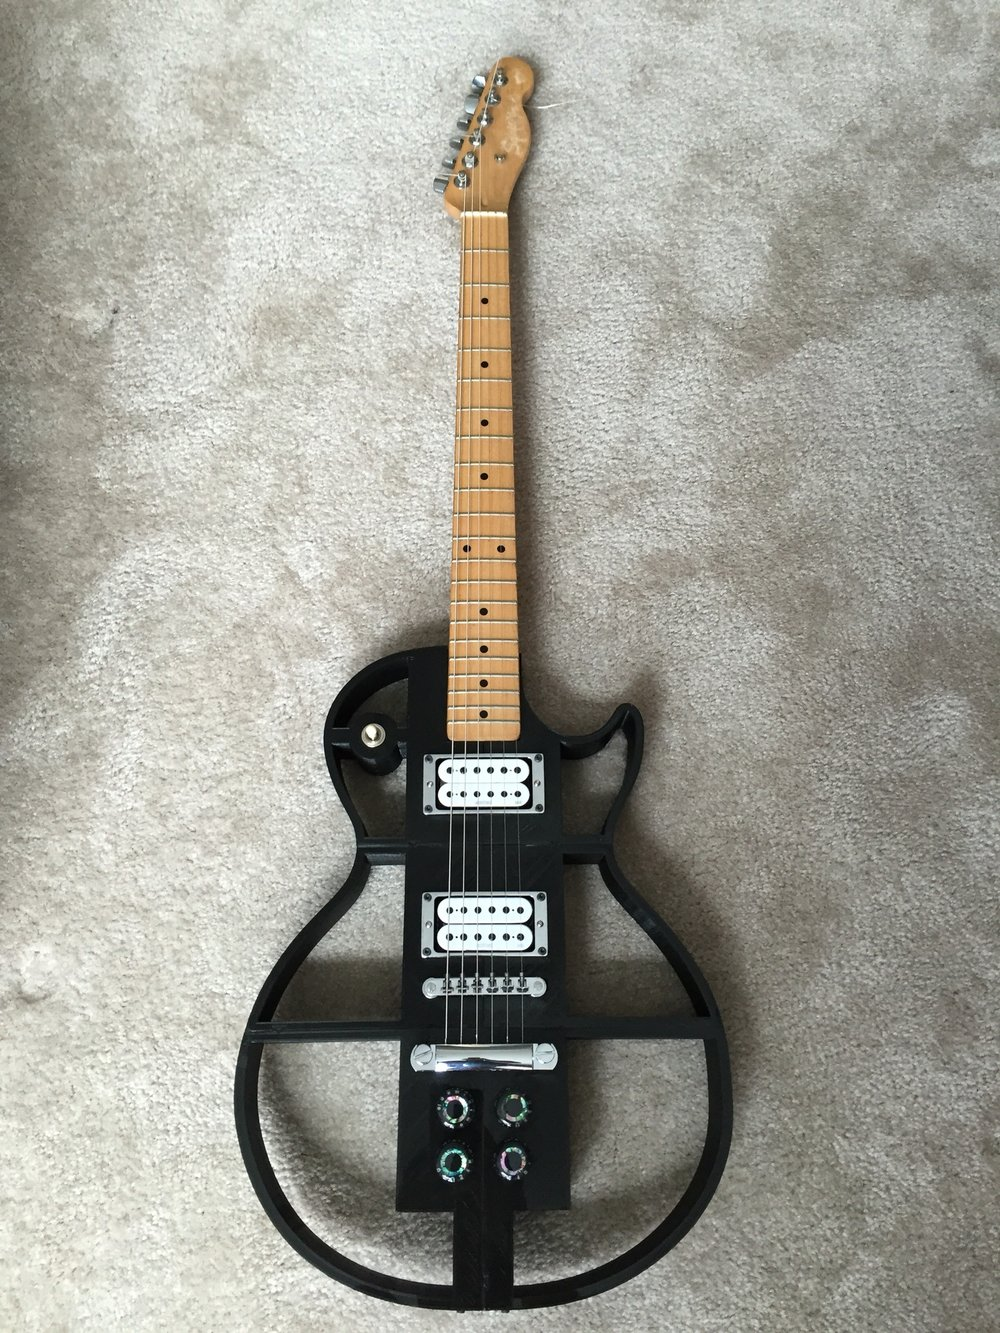 3D Printed Guitar Front View